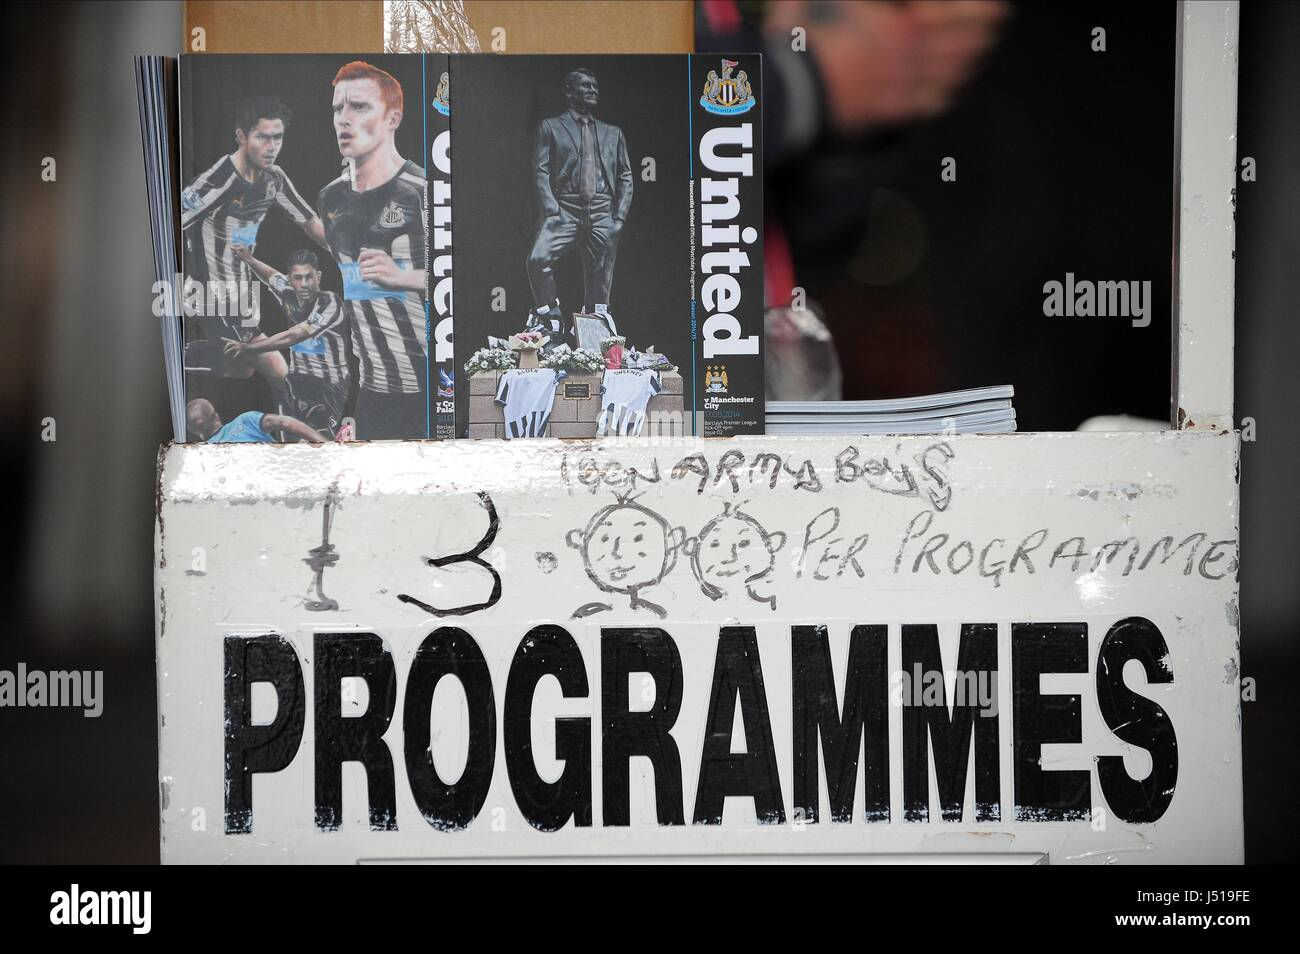 MATCHDAY PROGRAMMES NEWCASTLE UNITED FC V CRYSTAL ST JAMES PARK NEWCASTLE ENGLAND 30 August 2014 - Stock Image